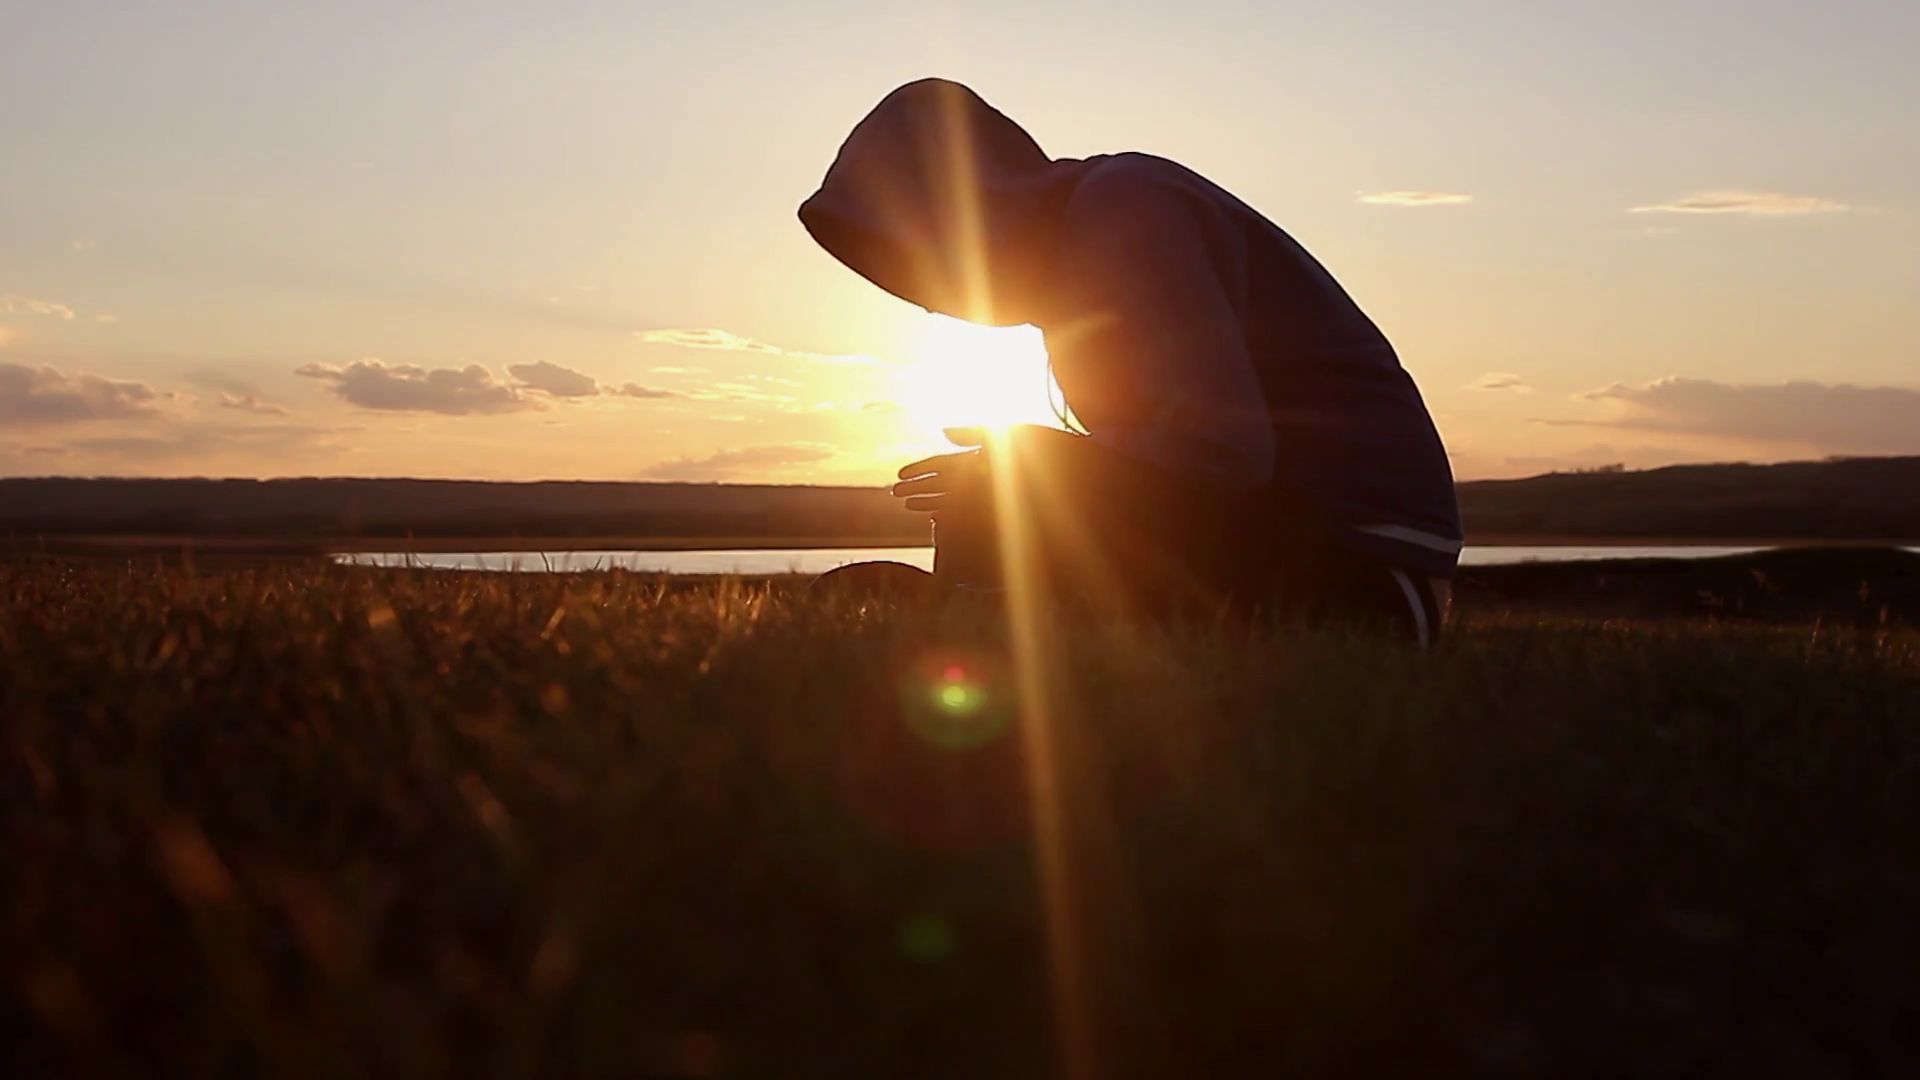 videoblocks-silhouette-of-a-man-praying-at-sunset-concept-of-religion-image-of-silhouette-man-praying-with-sunset-background_hayl7_ccl_thumbnail-full01.png